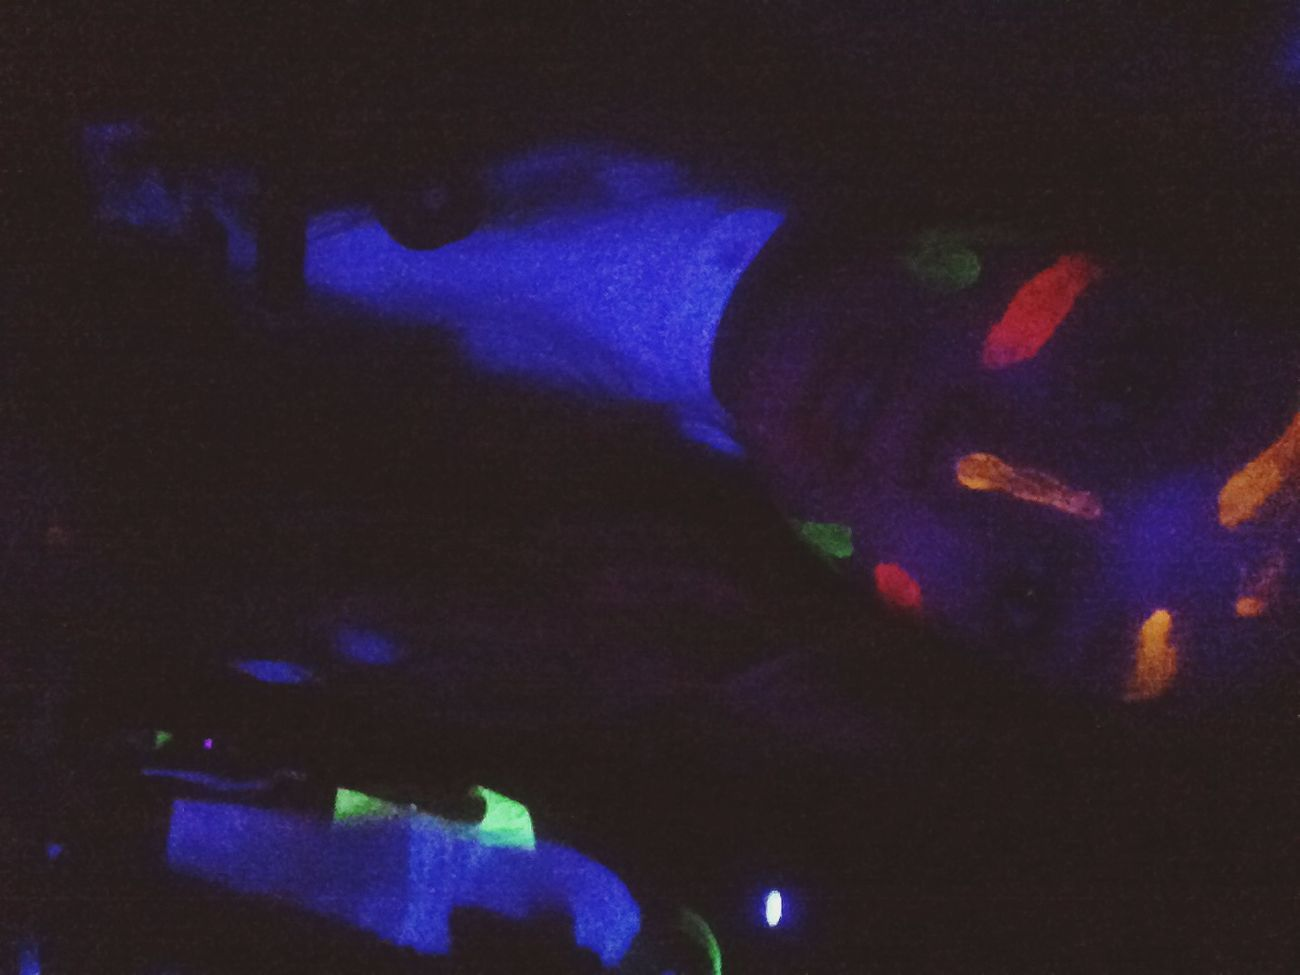 Glow paint party while bringing in the new year